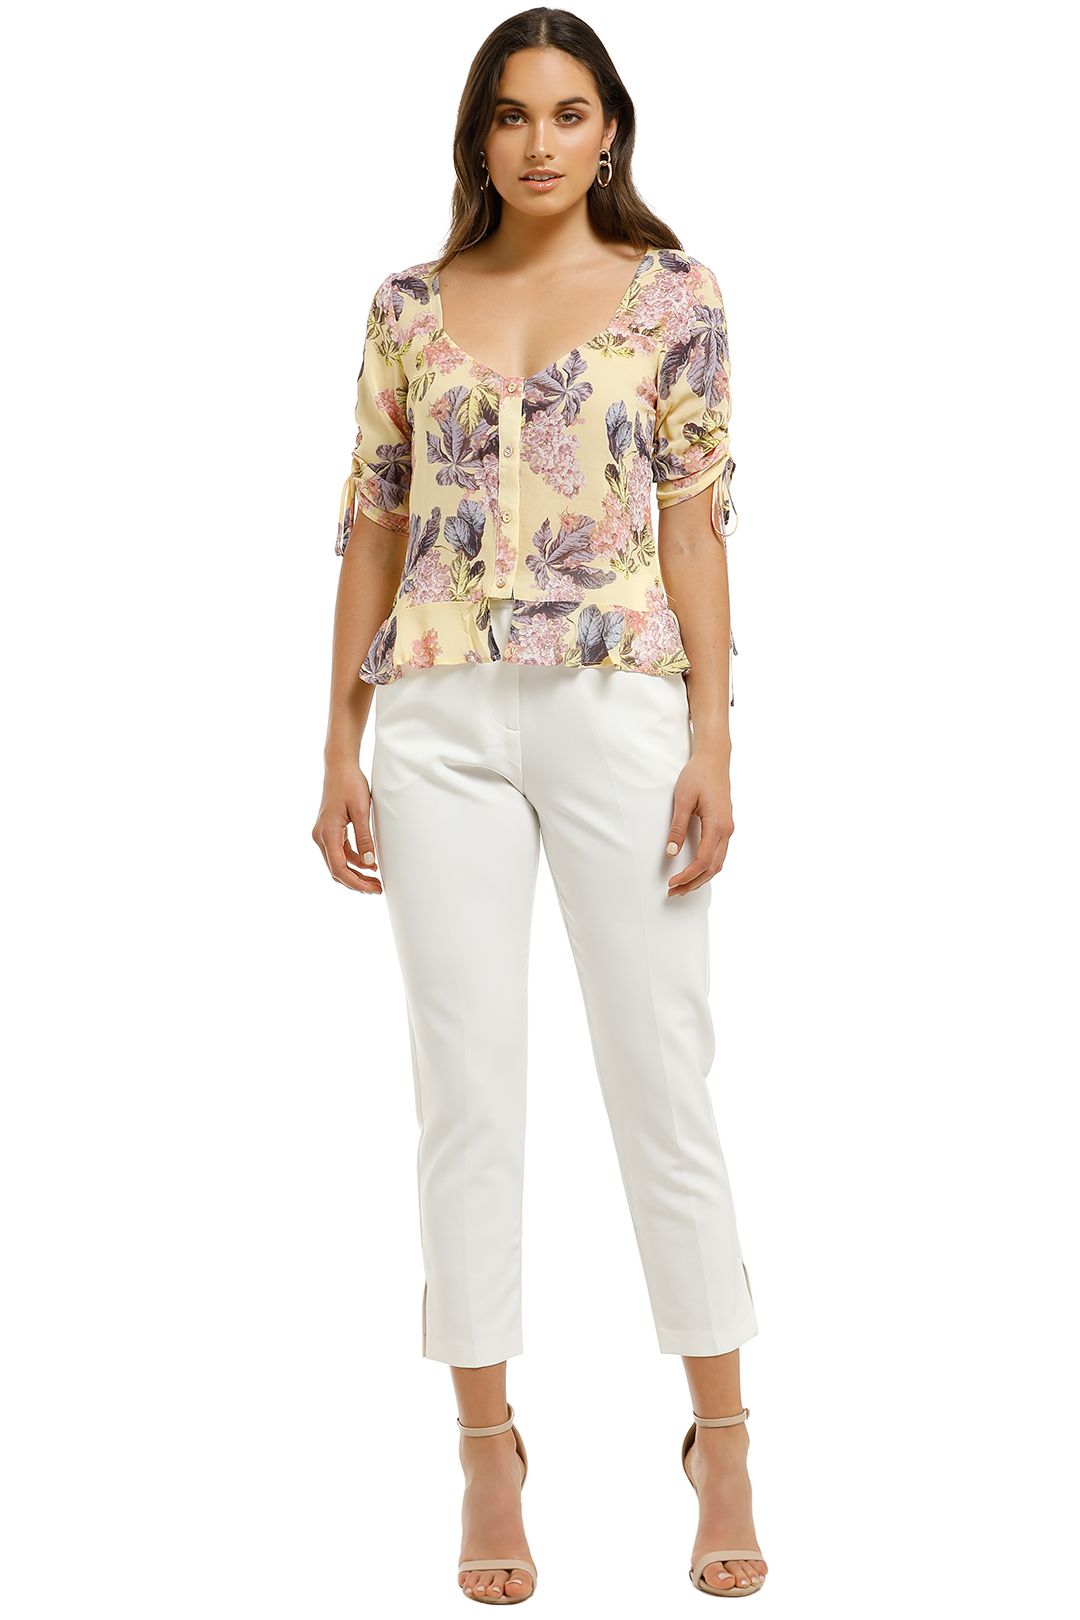 We-Are-Kindred-Stevie-Sweetheart-Blouse-Lemon-Blossoms-Front